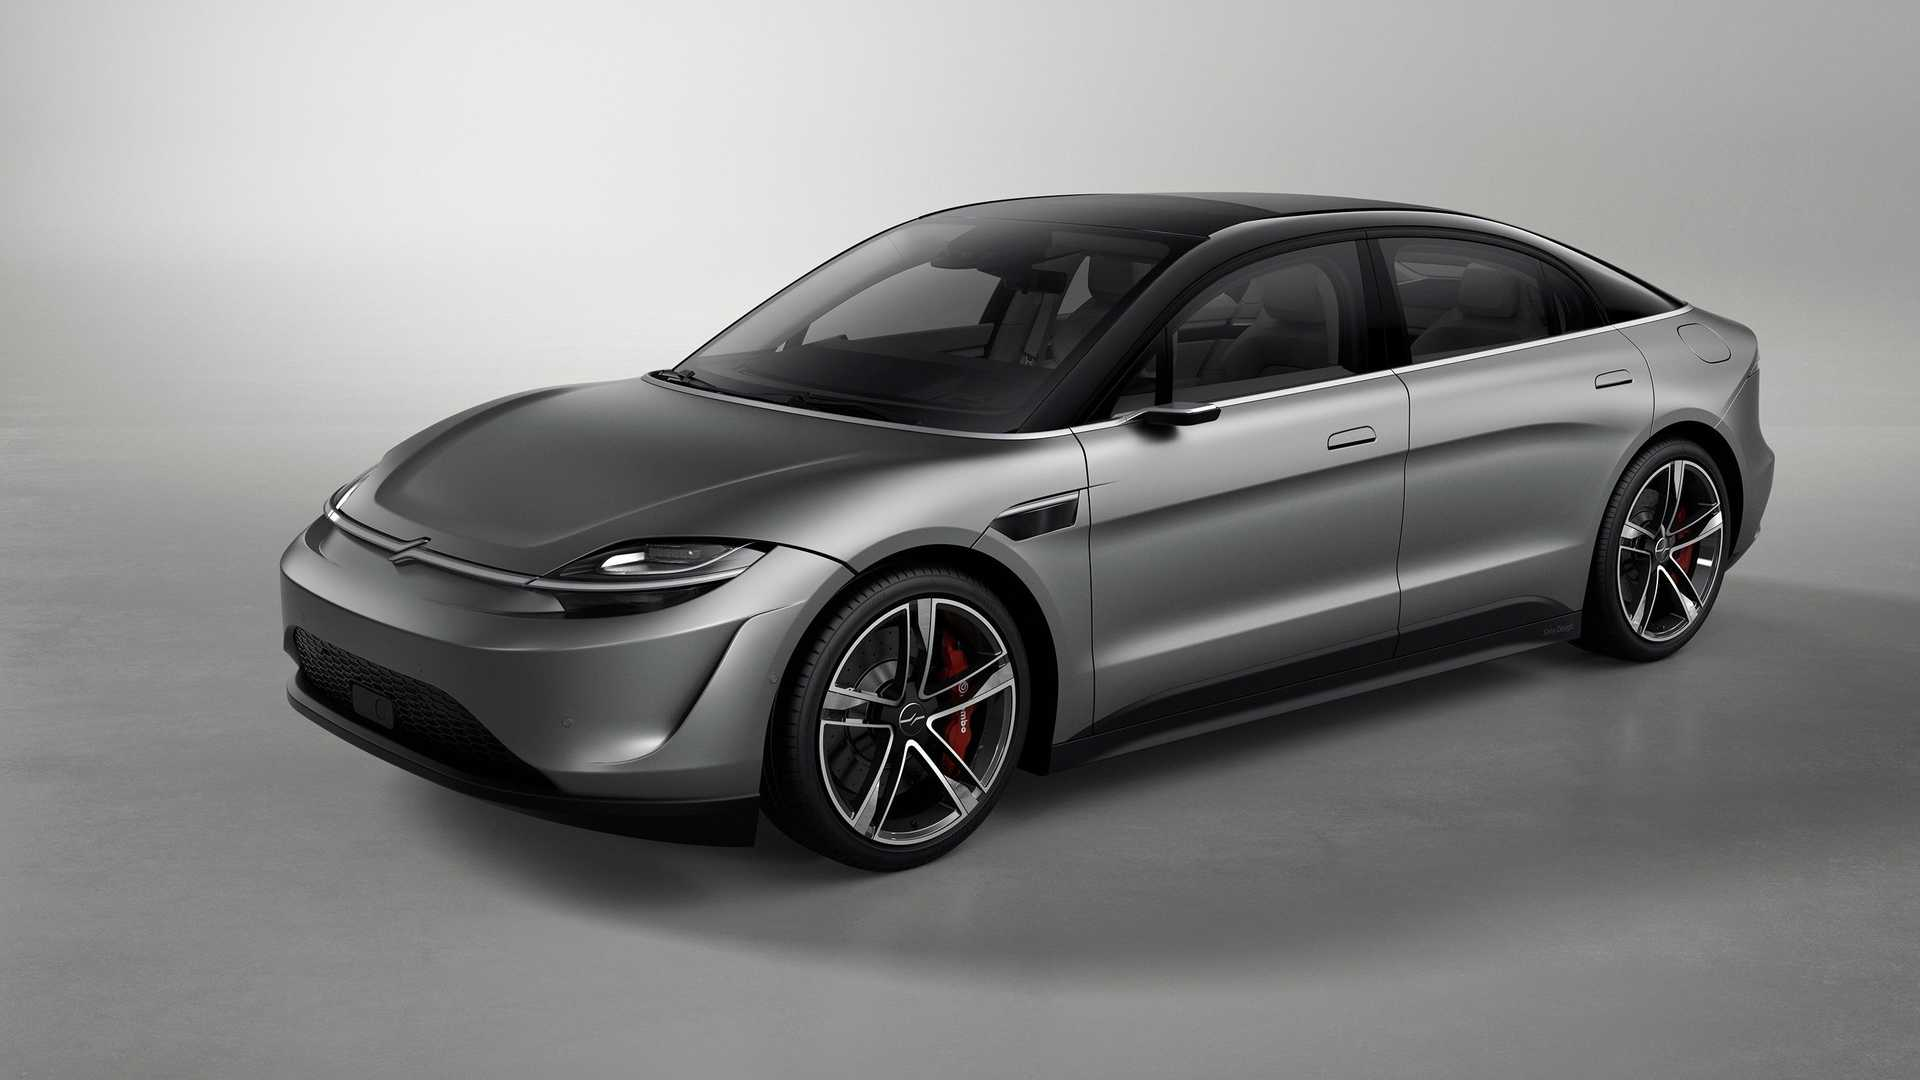 Sony Not Making The Vision-S Electric Sedan After All - Motor1